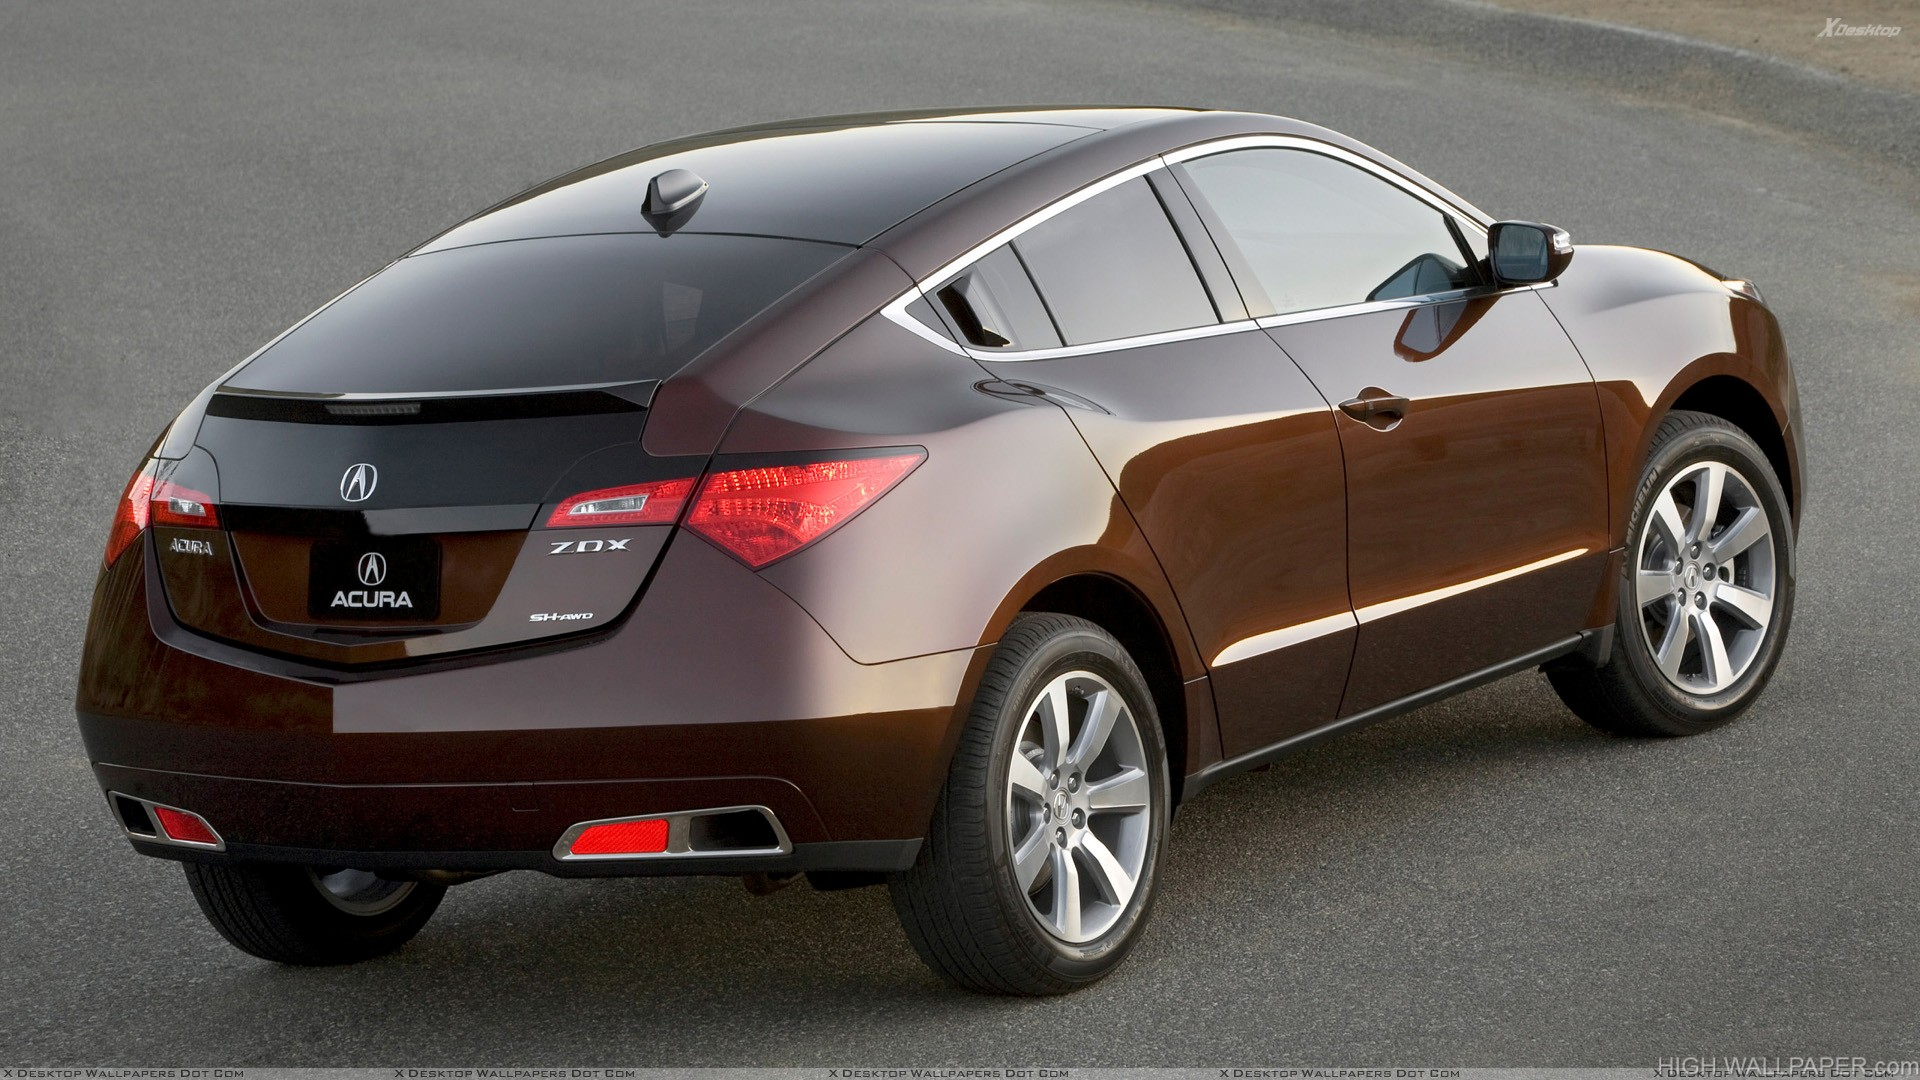 Back Side Pose Of 2010 Acura ZDX In Brown